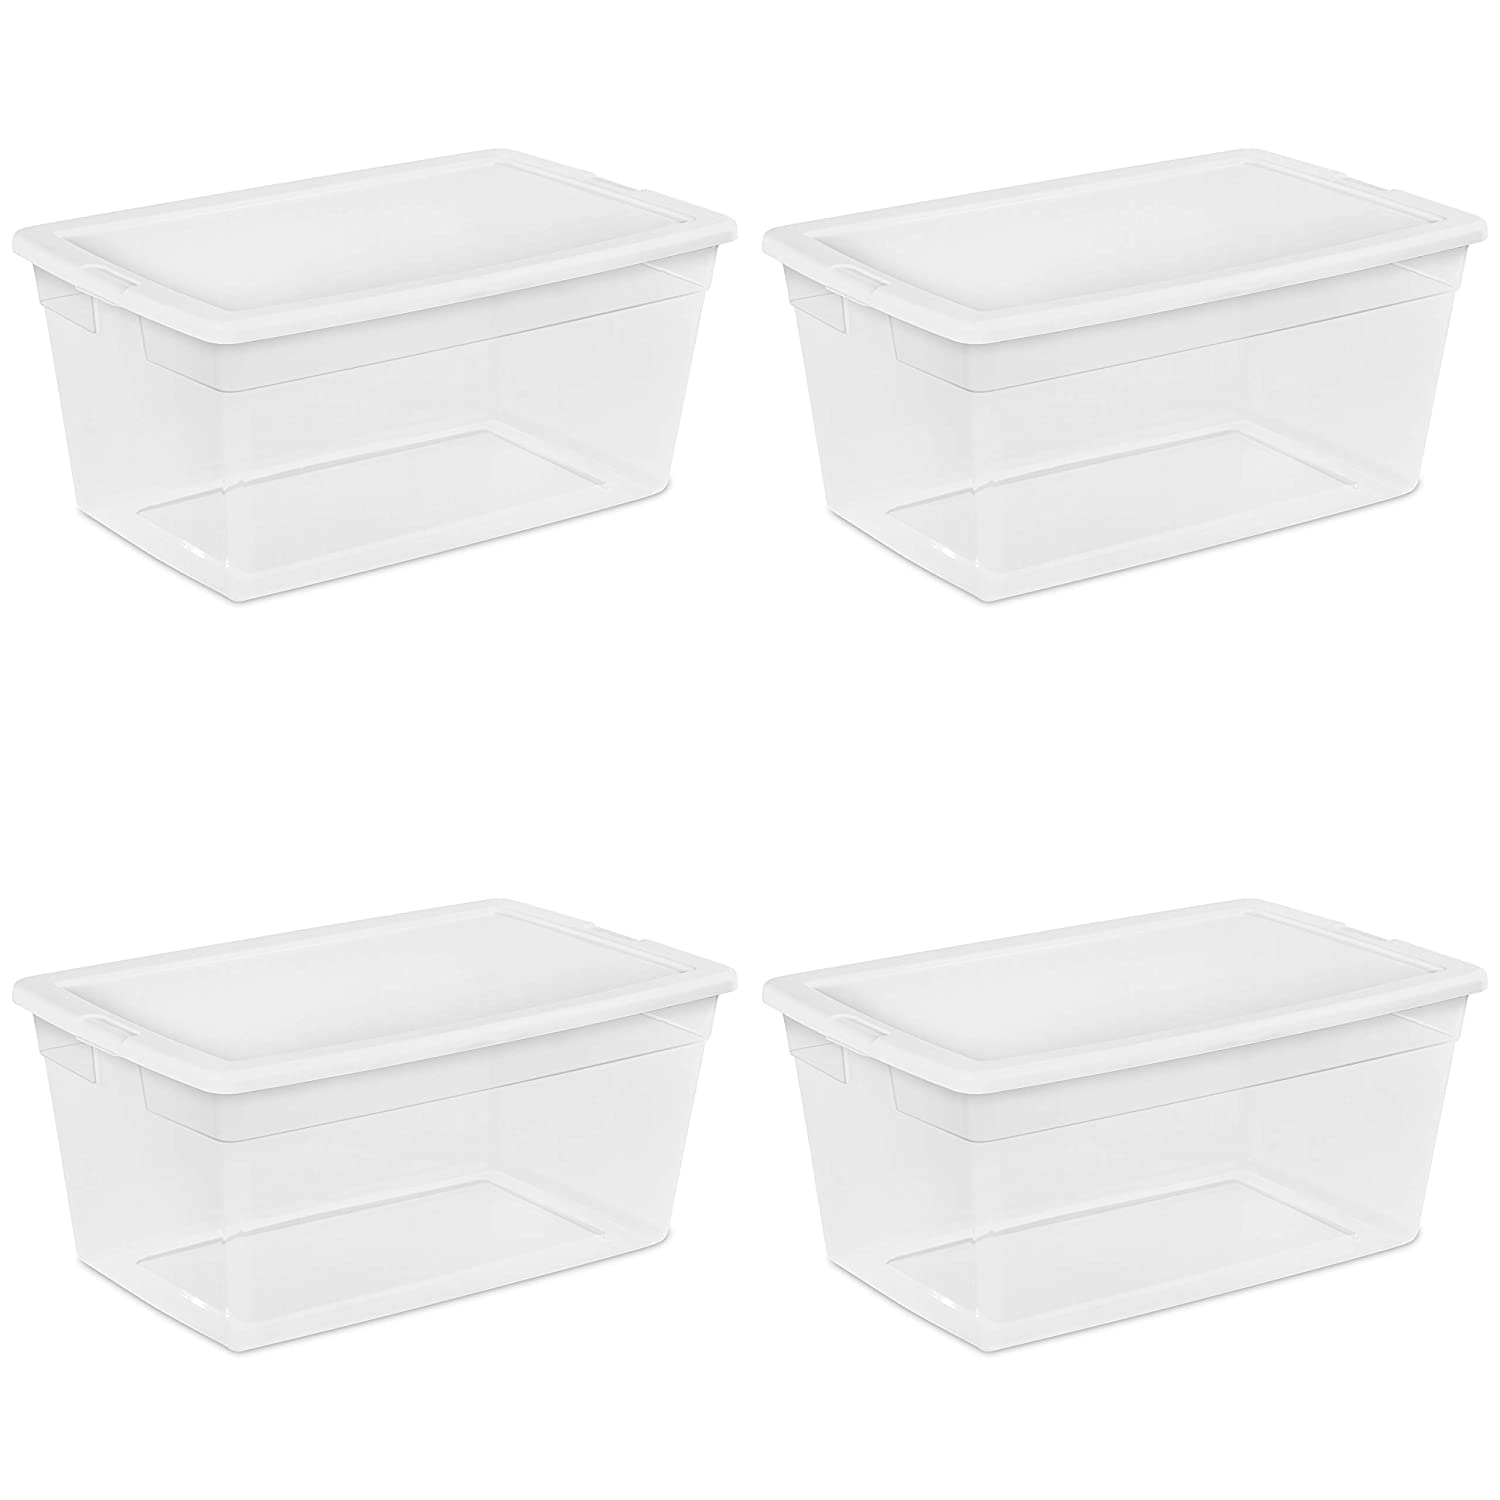 Sterilite 16668004 90 Quart/85 Liter Storage Box, Clear with a White Lid, 4-Pack